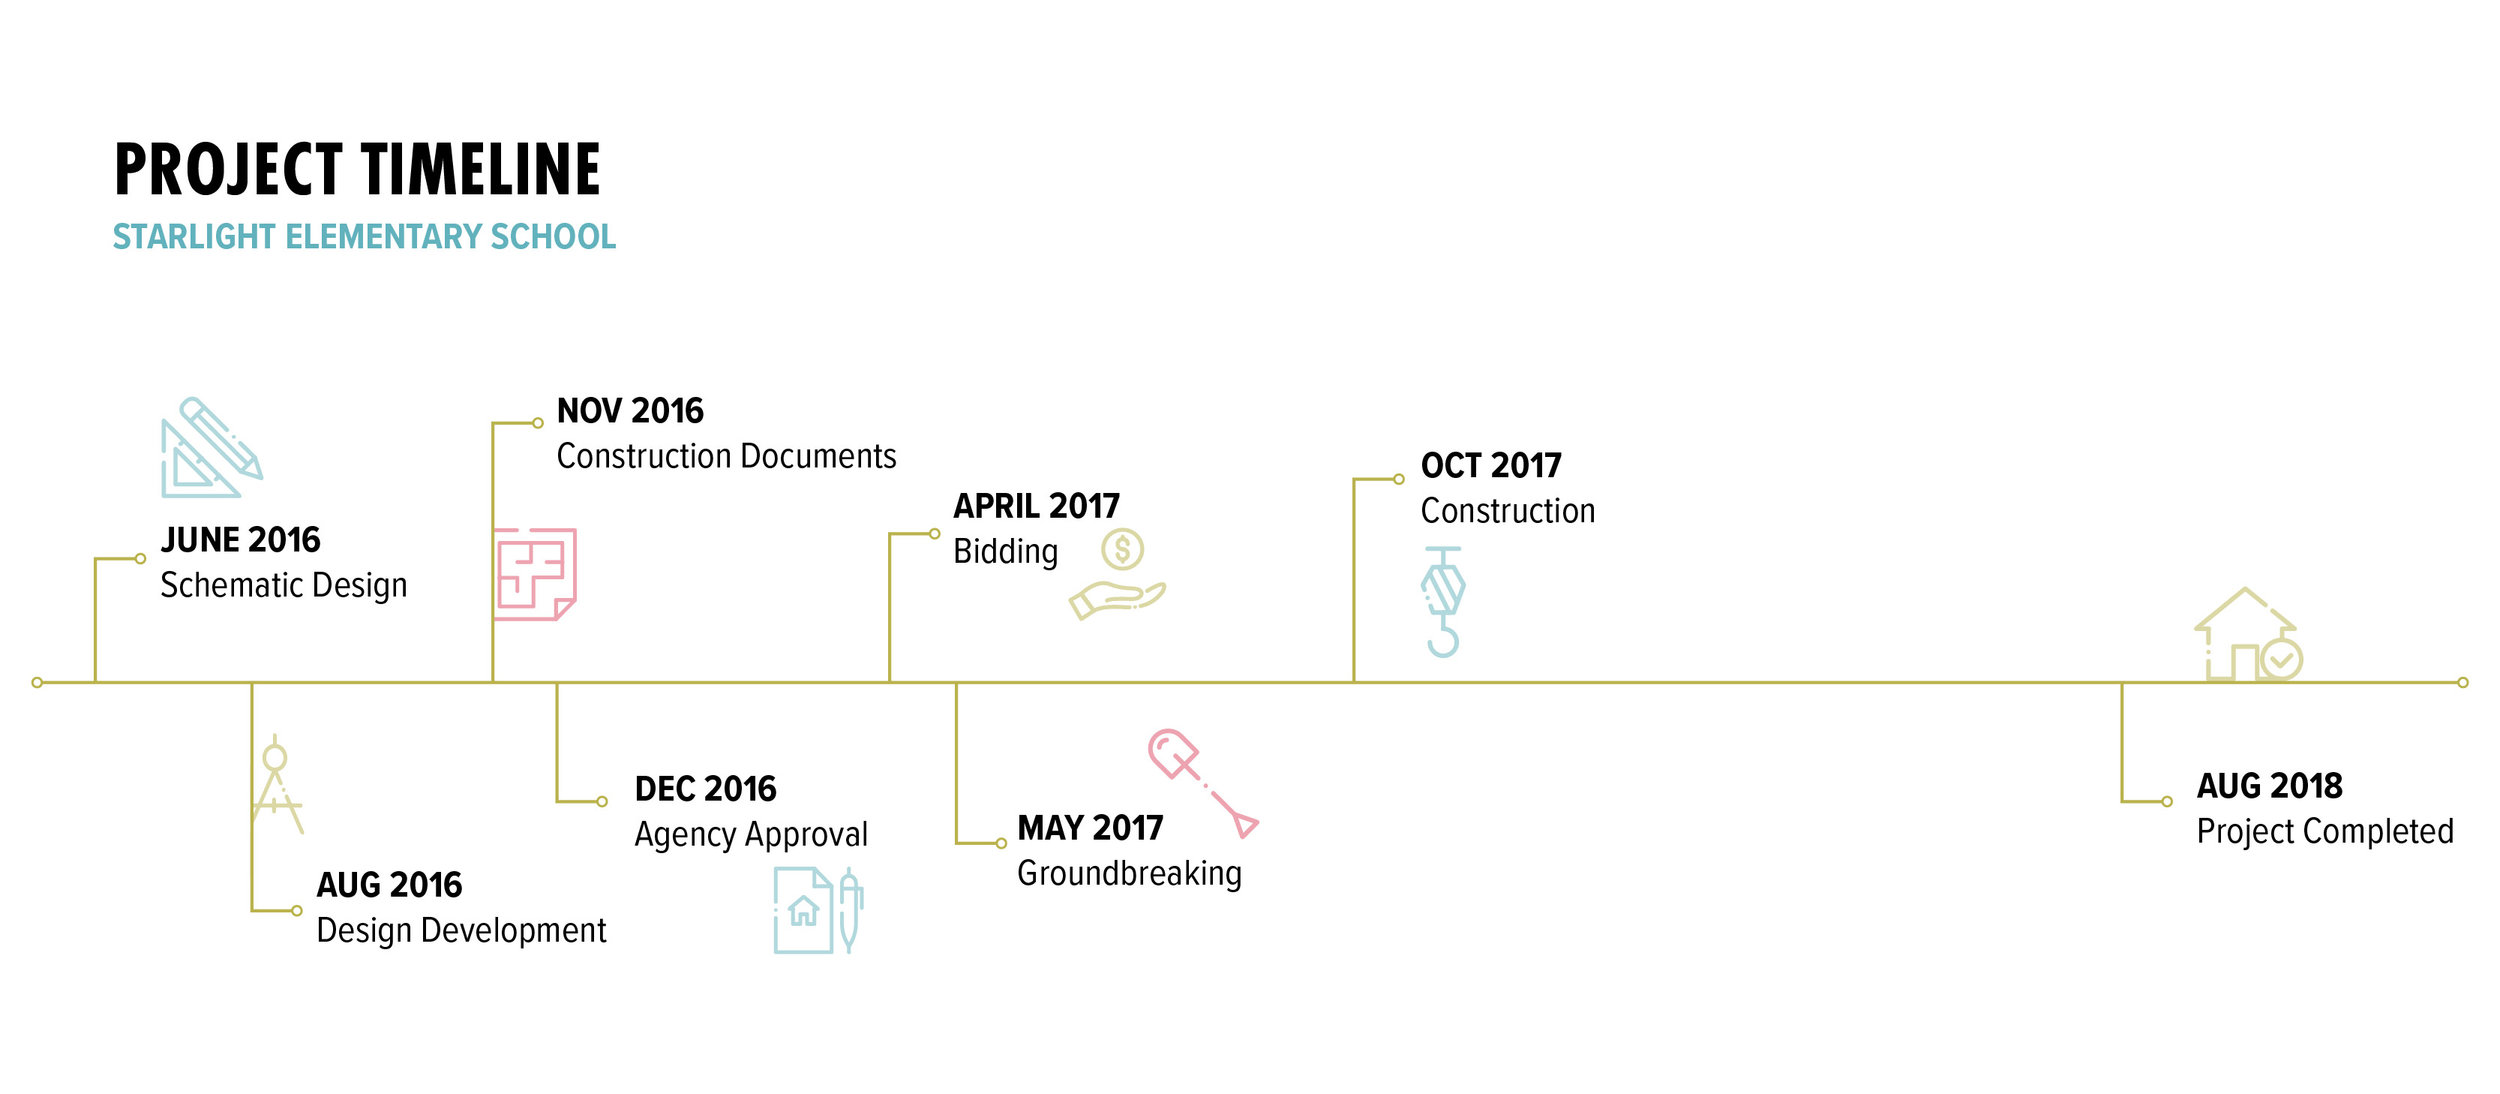 Project Timeline Graphic.jpg